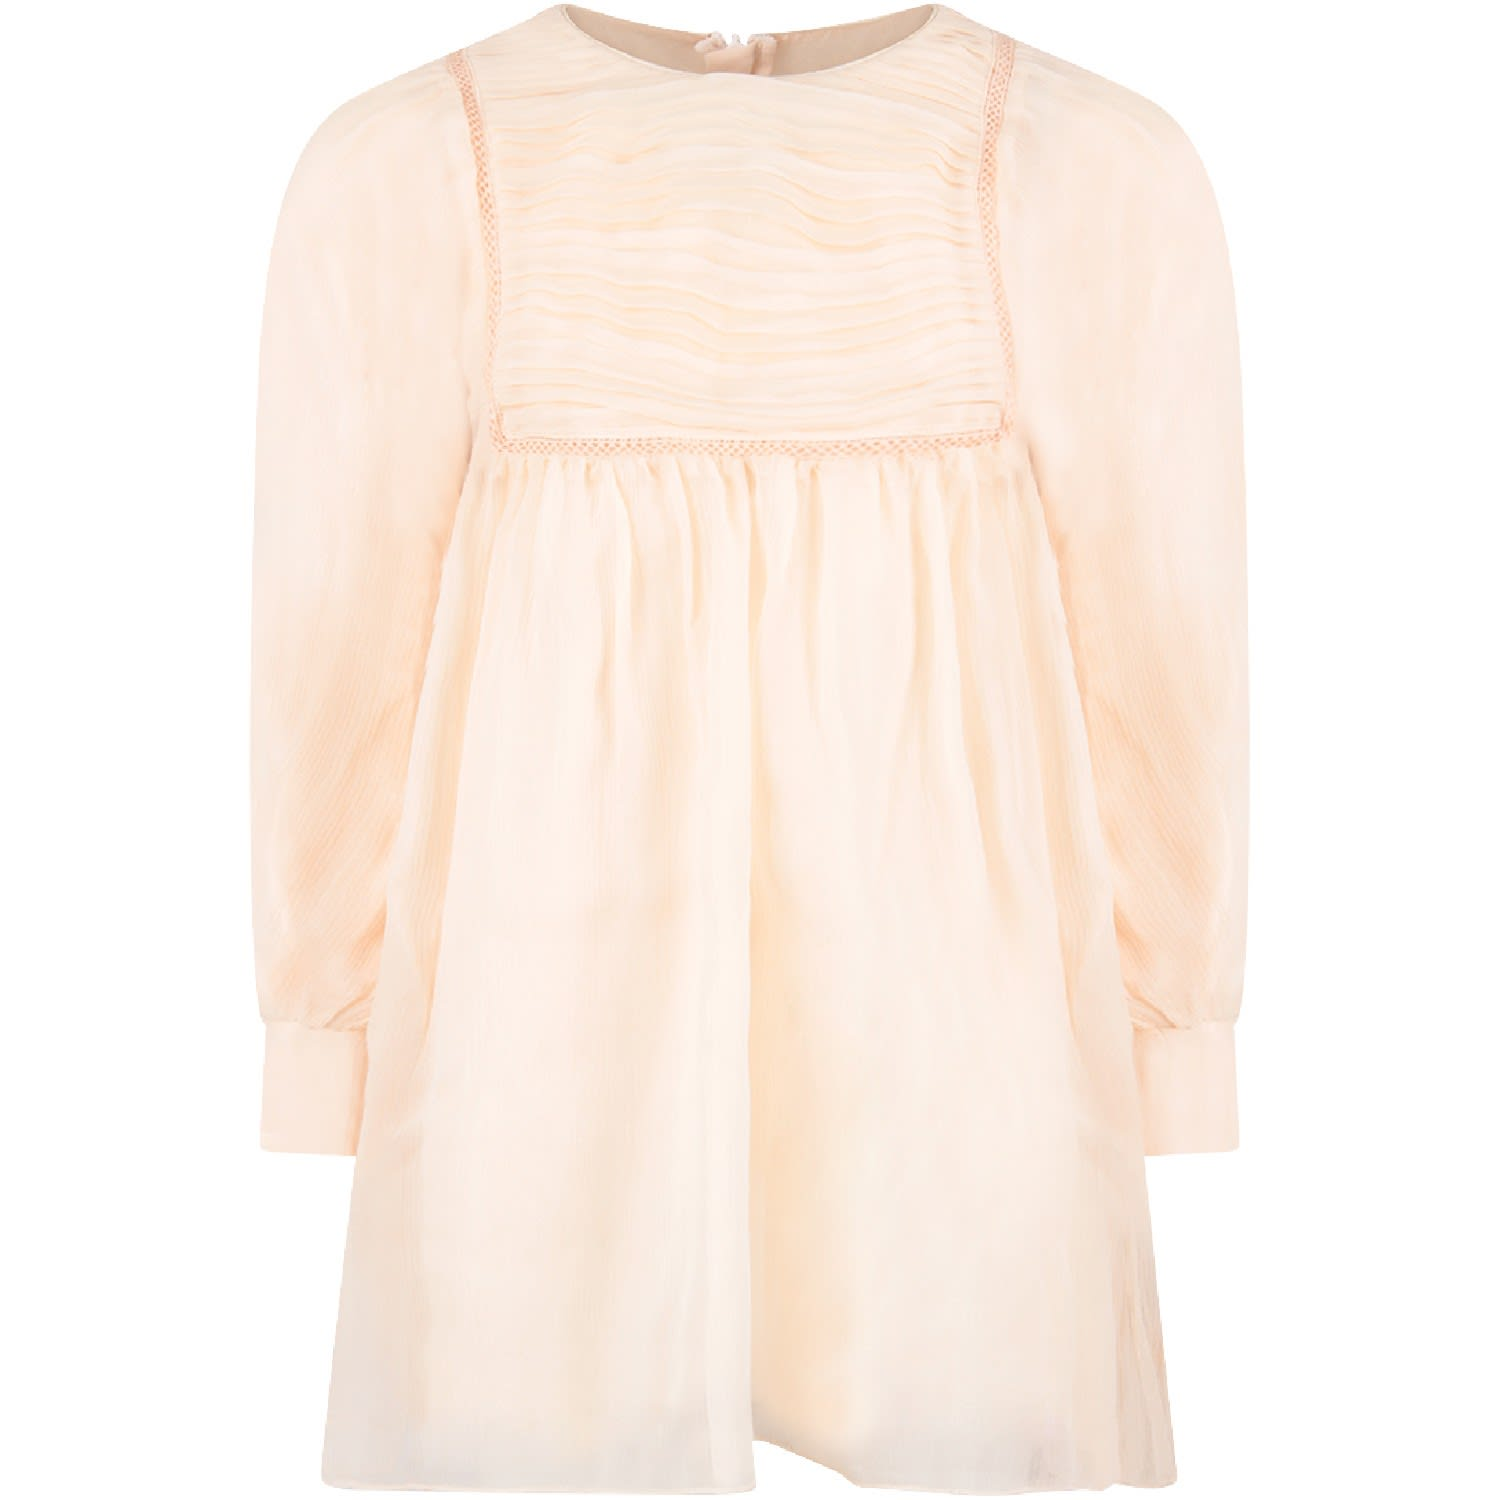 Chloé Pink Chiffon Girl Dress